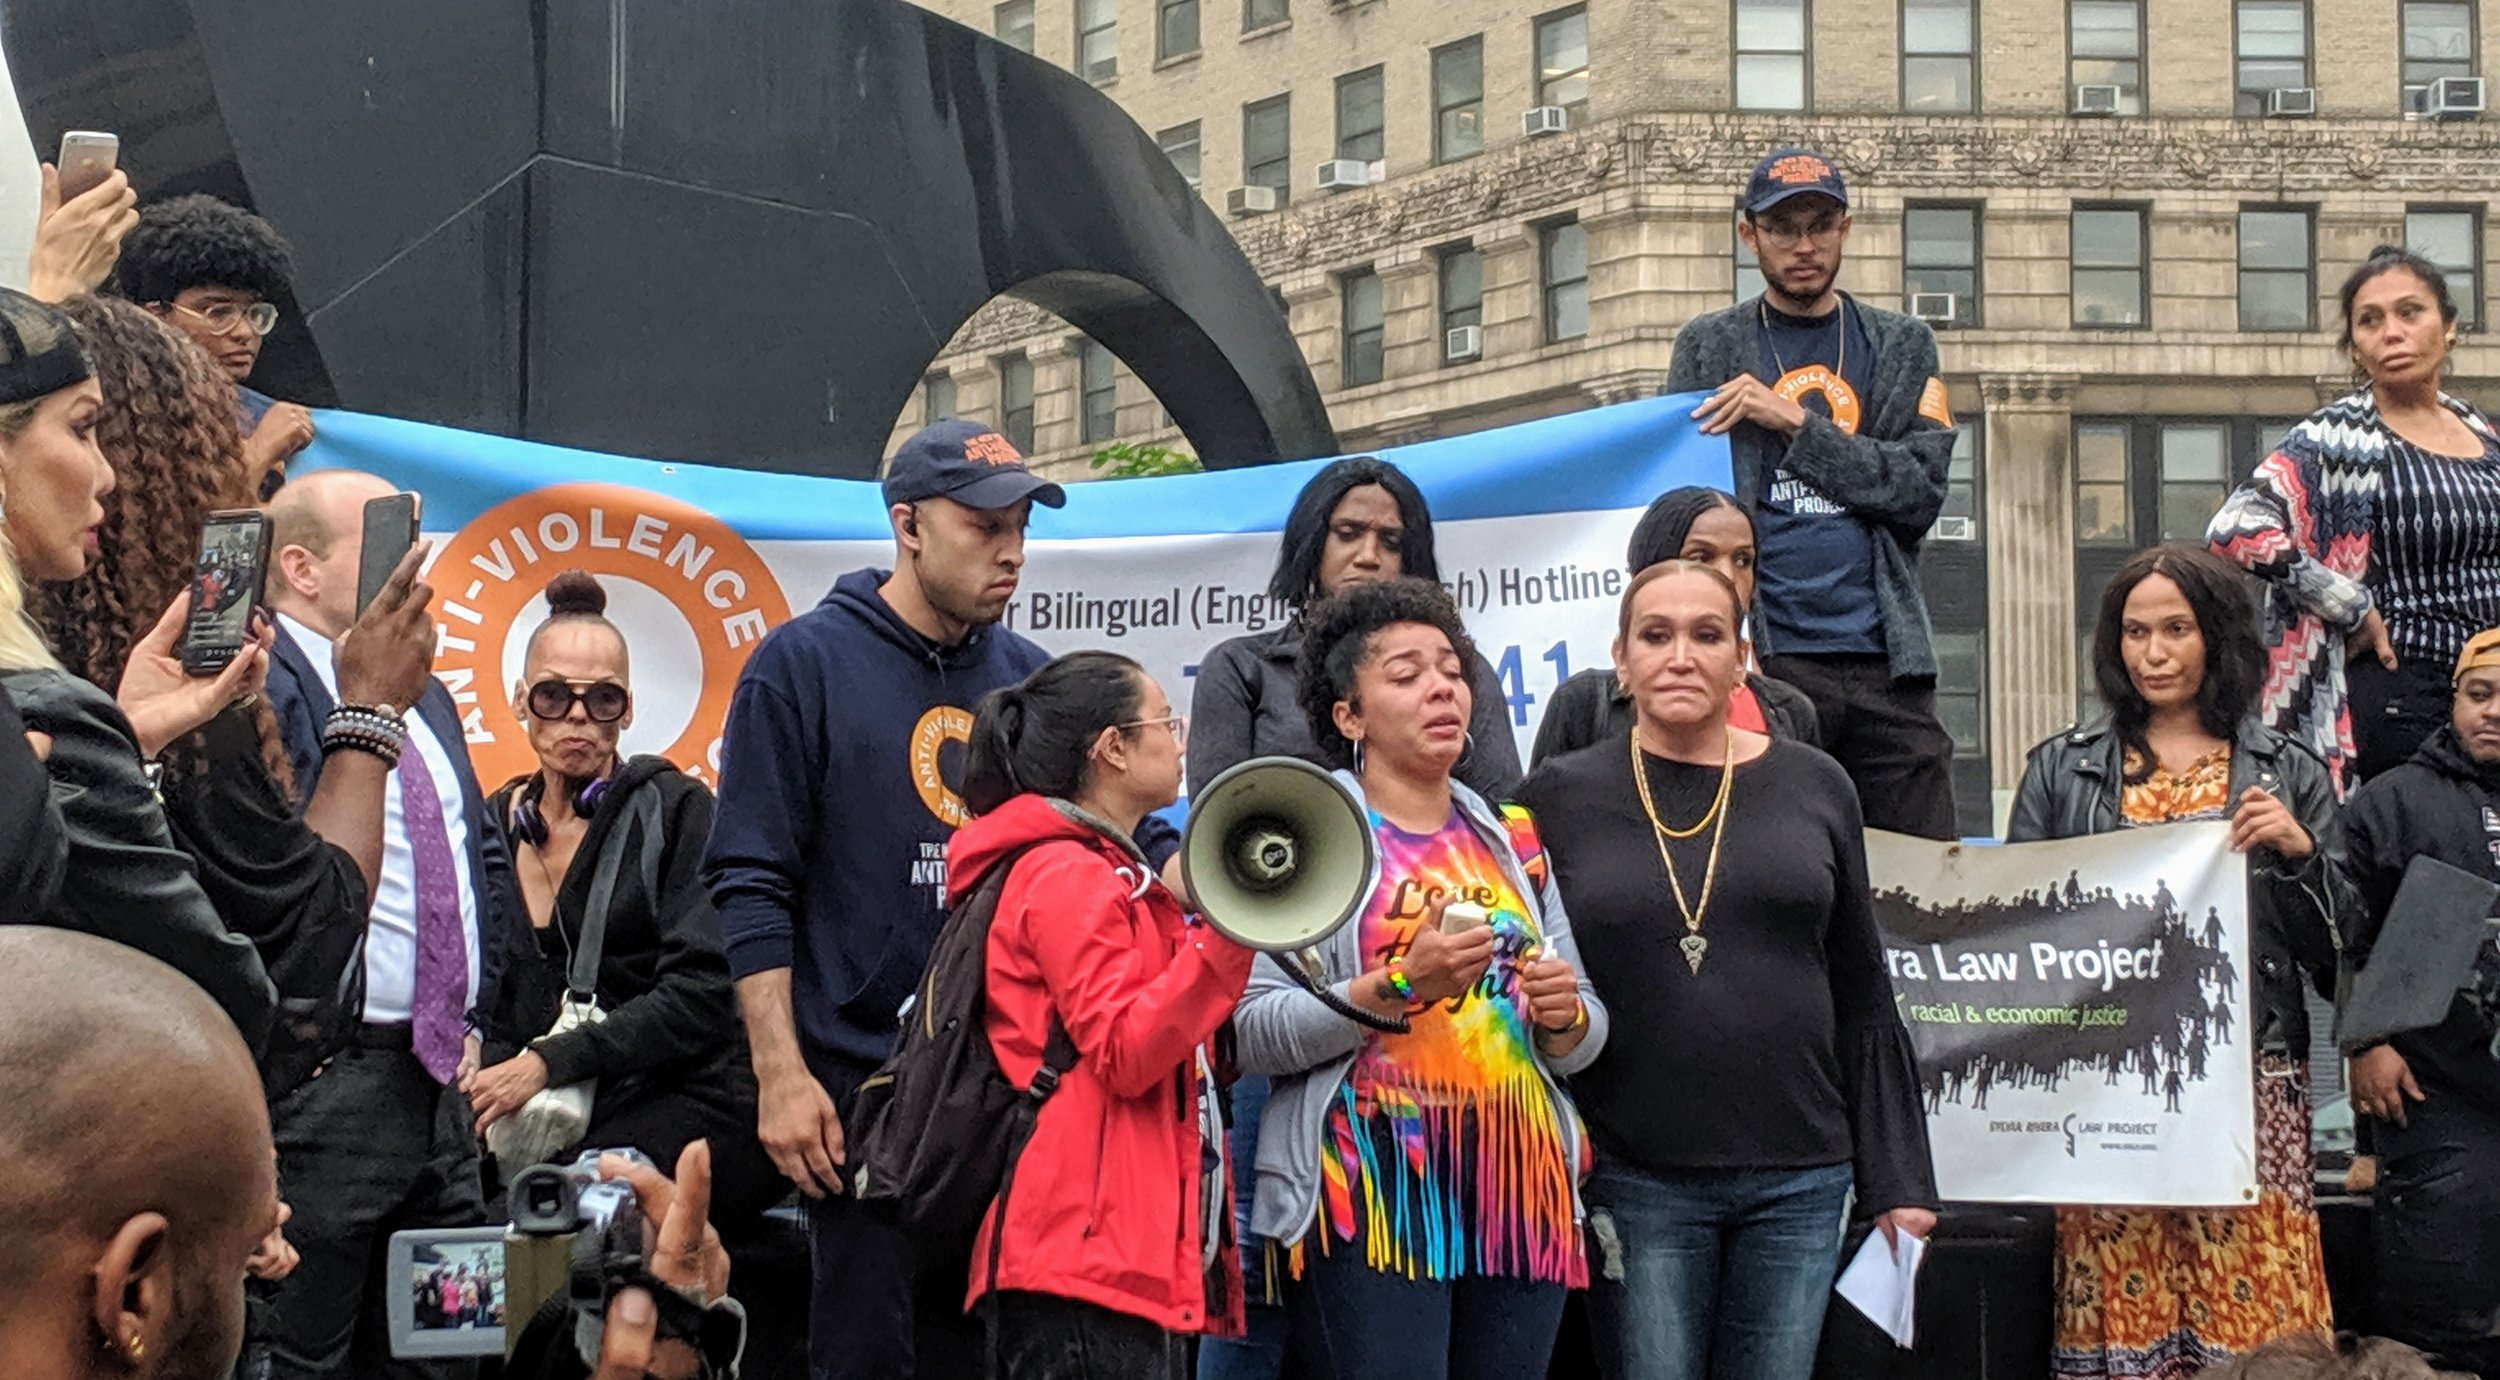 Polanco's sister Melania Brown speaks to the crowd at Foley Square on Monday evening.  Eagle  photos by Phineas Rueckert.